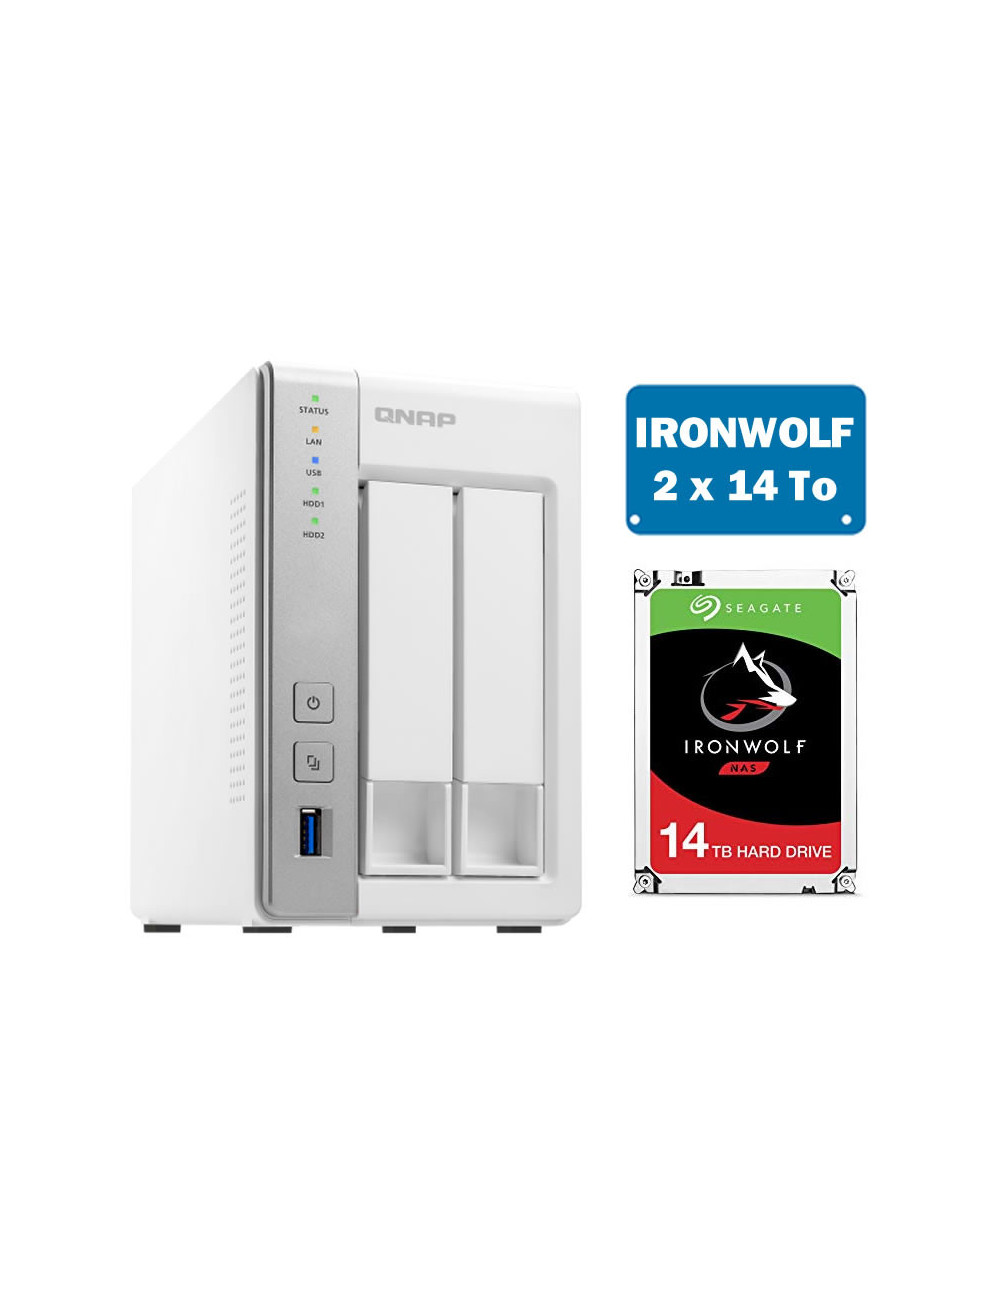 QNAP TS-231P Serveur NAS IRONWOLF 28 To